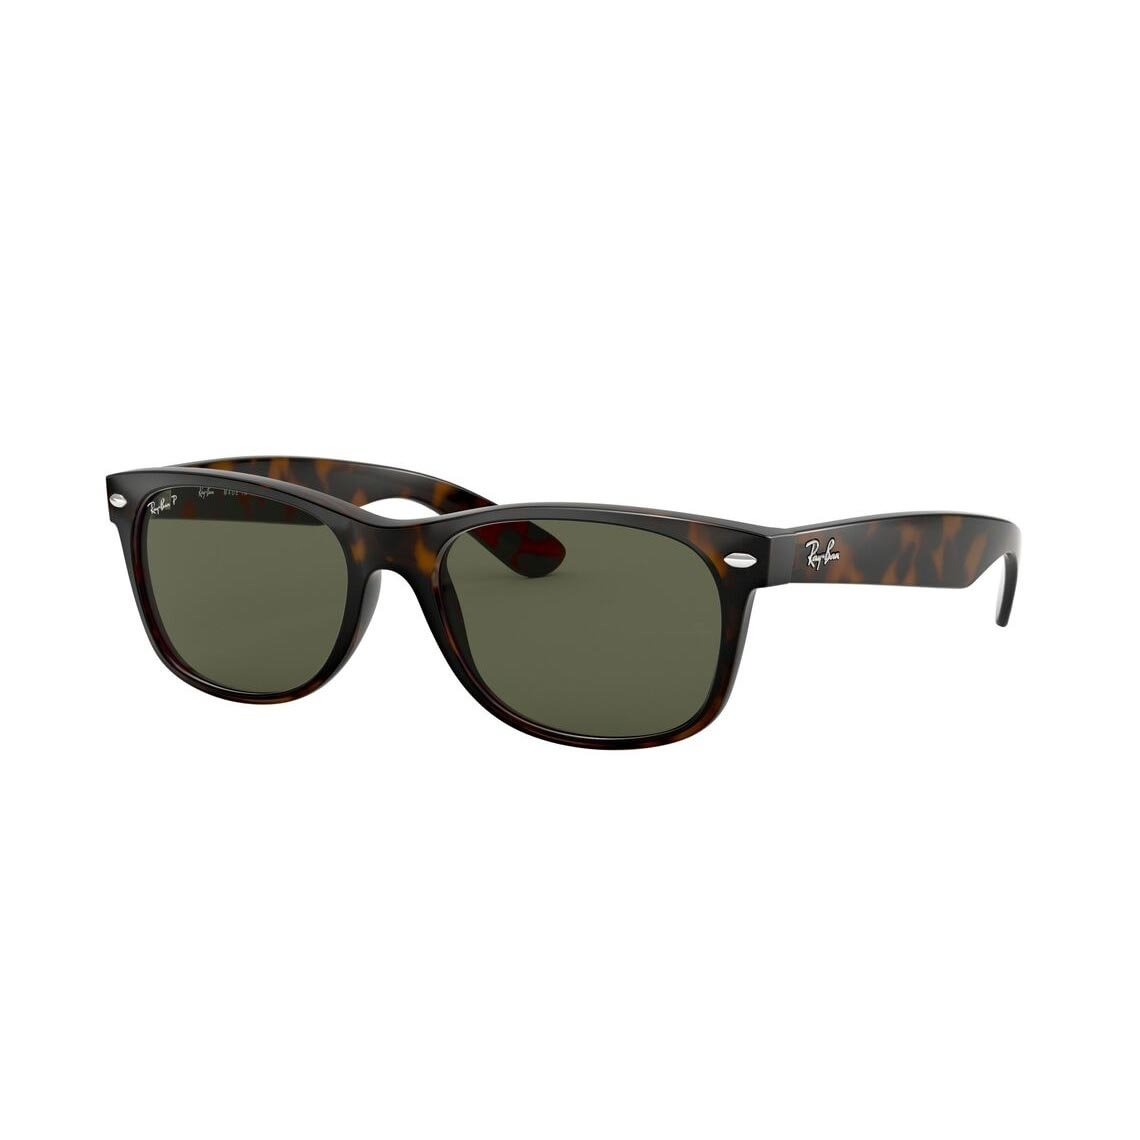 Ray-Ban New Wayfarer RB2132 902/58 58